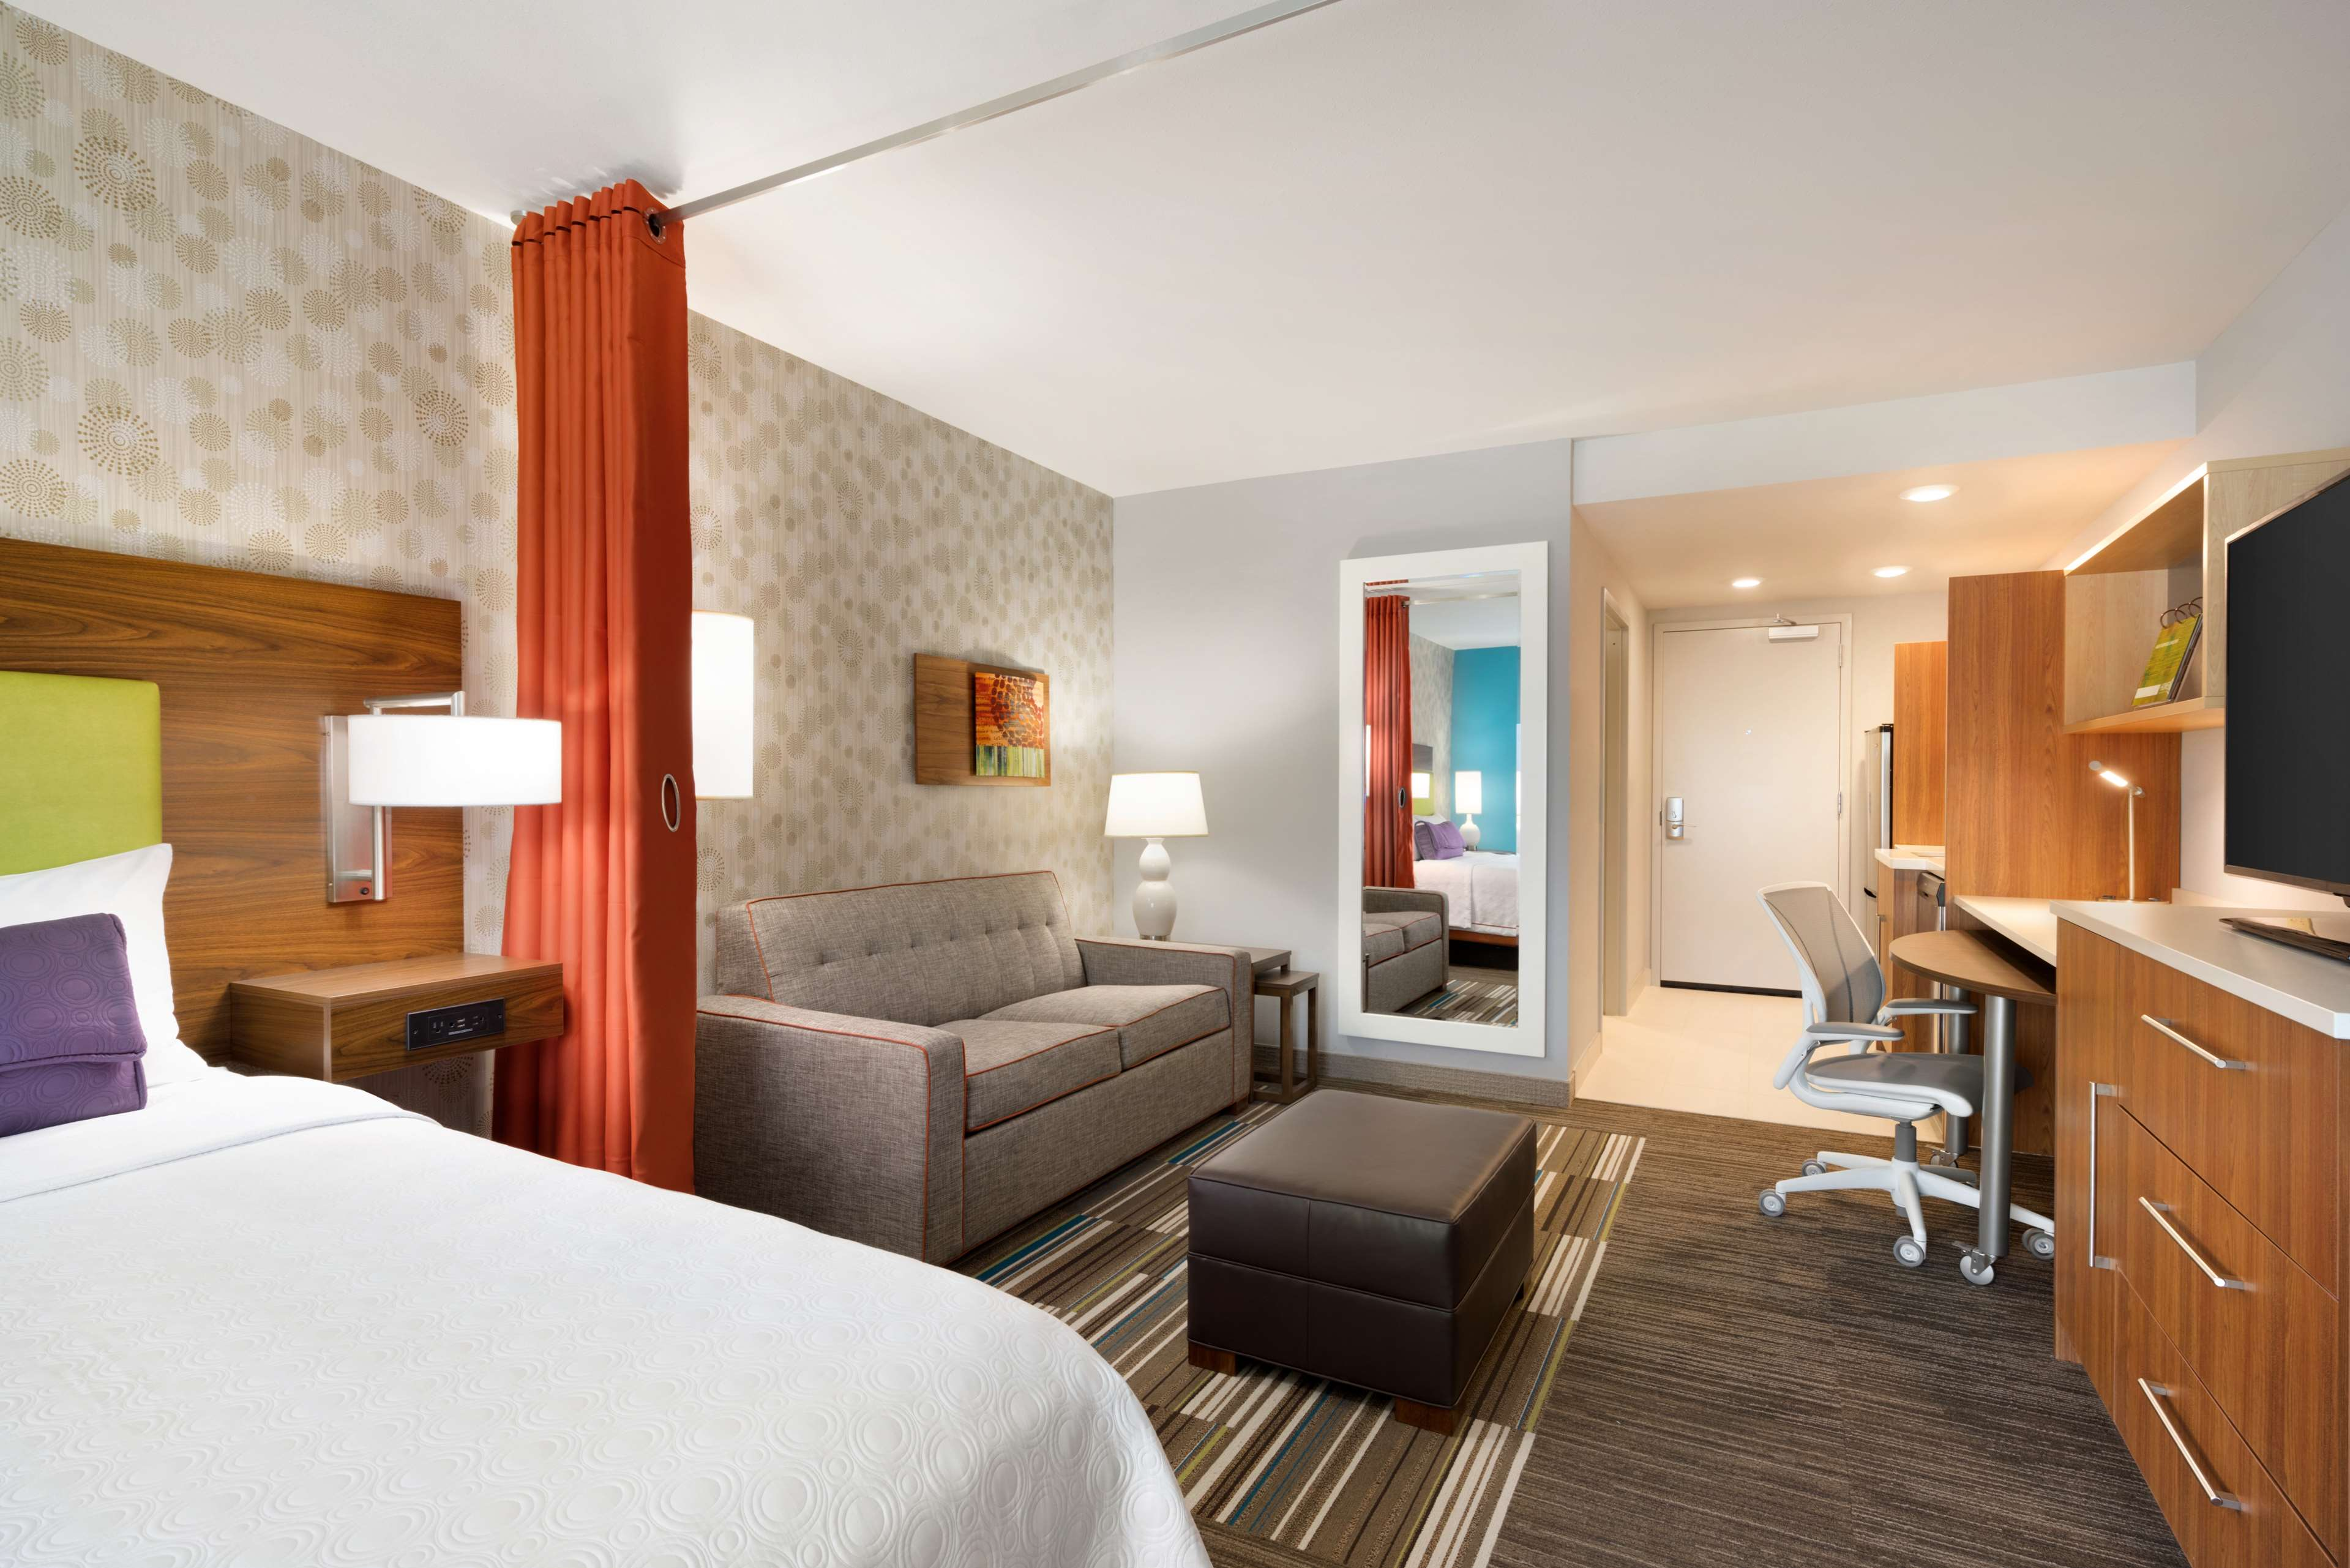 Home2 Suites by Hilton Roanoke image 27